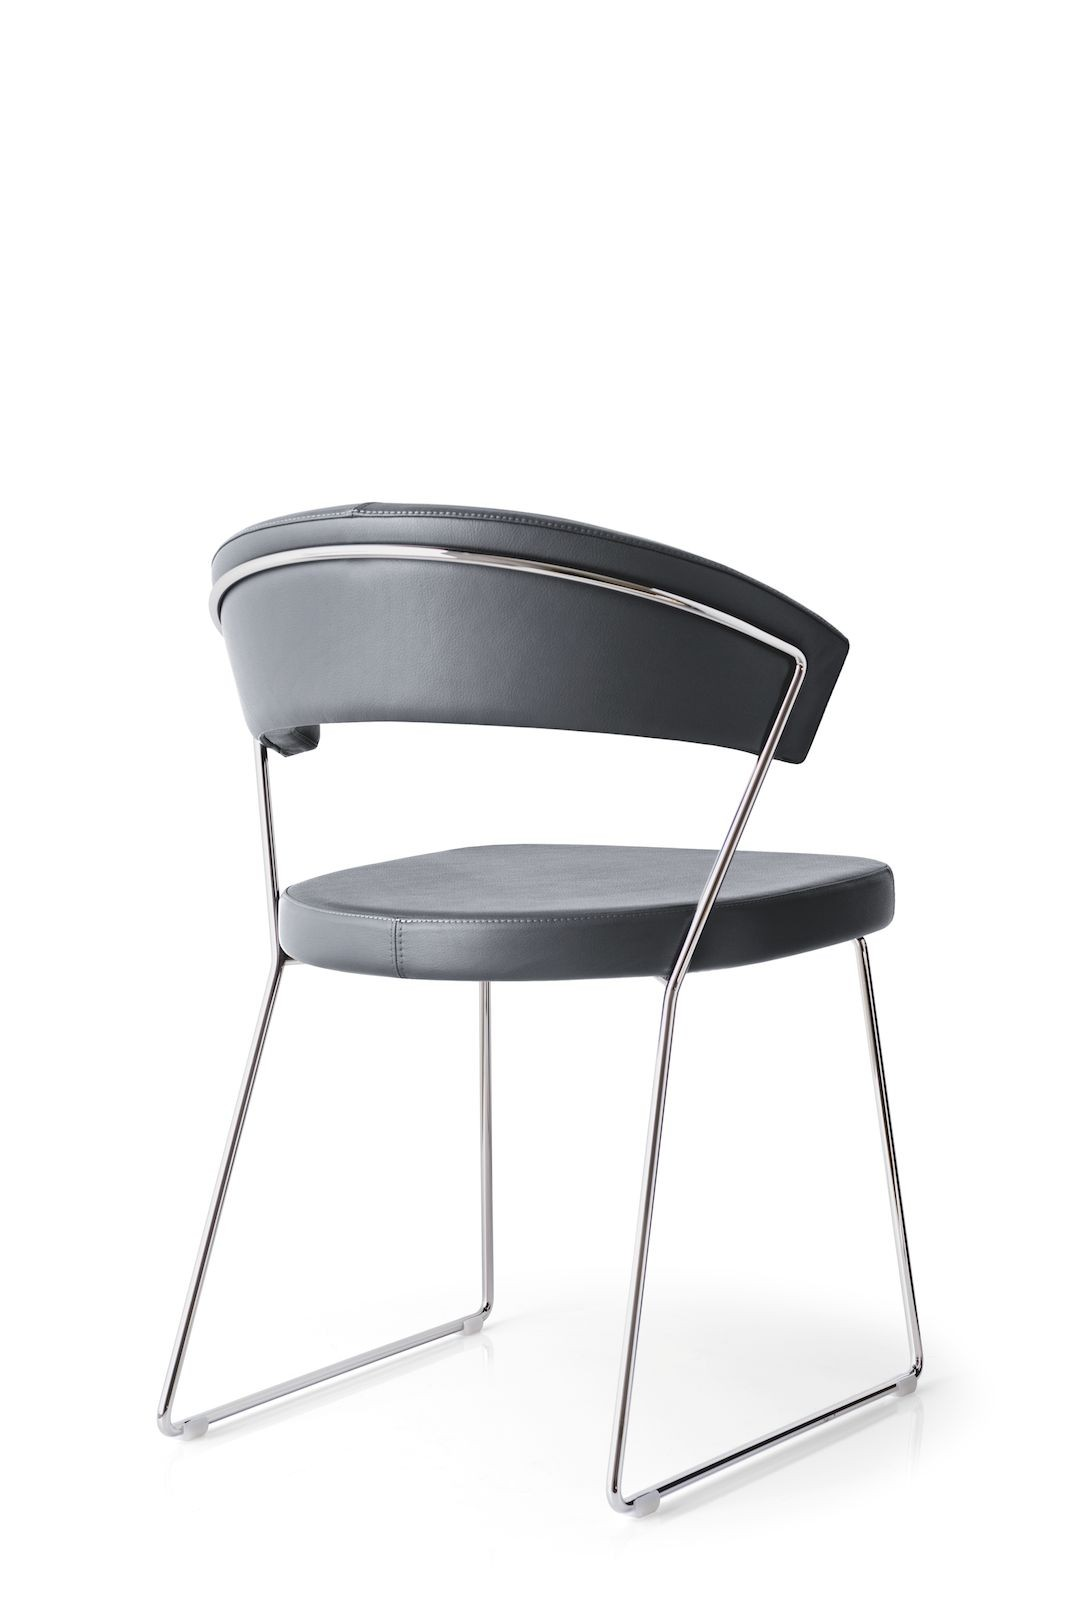 Calligaris Chairs Calligaris New York Dining Chair Frank Mc Gowan